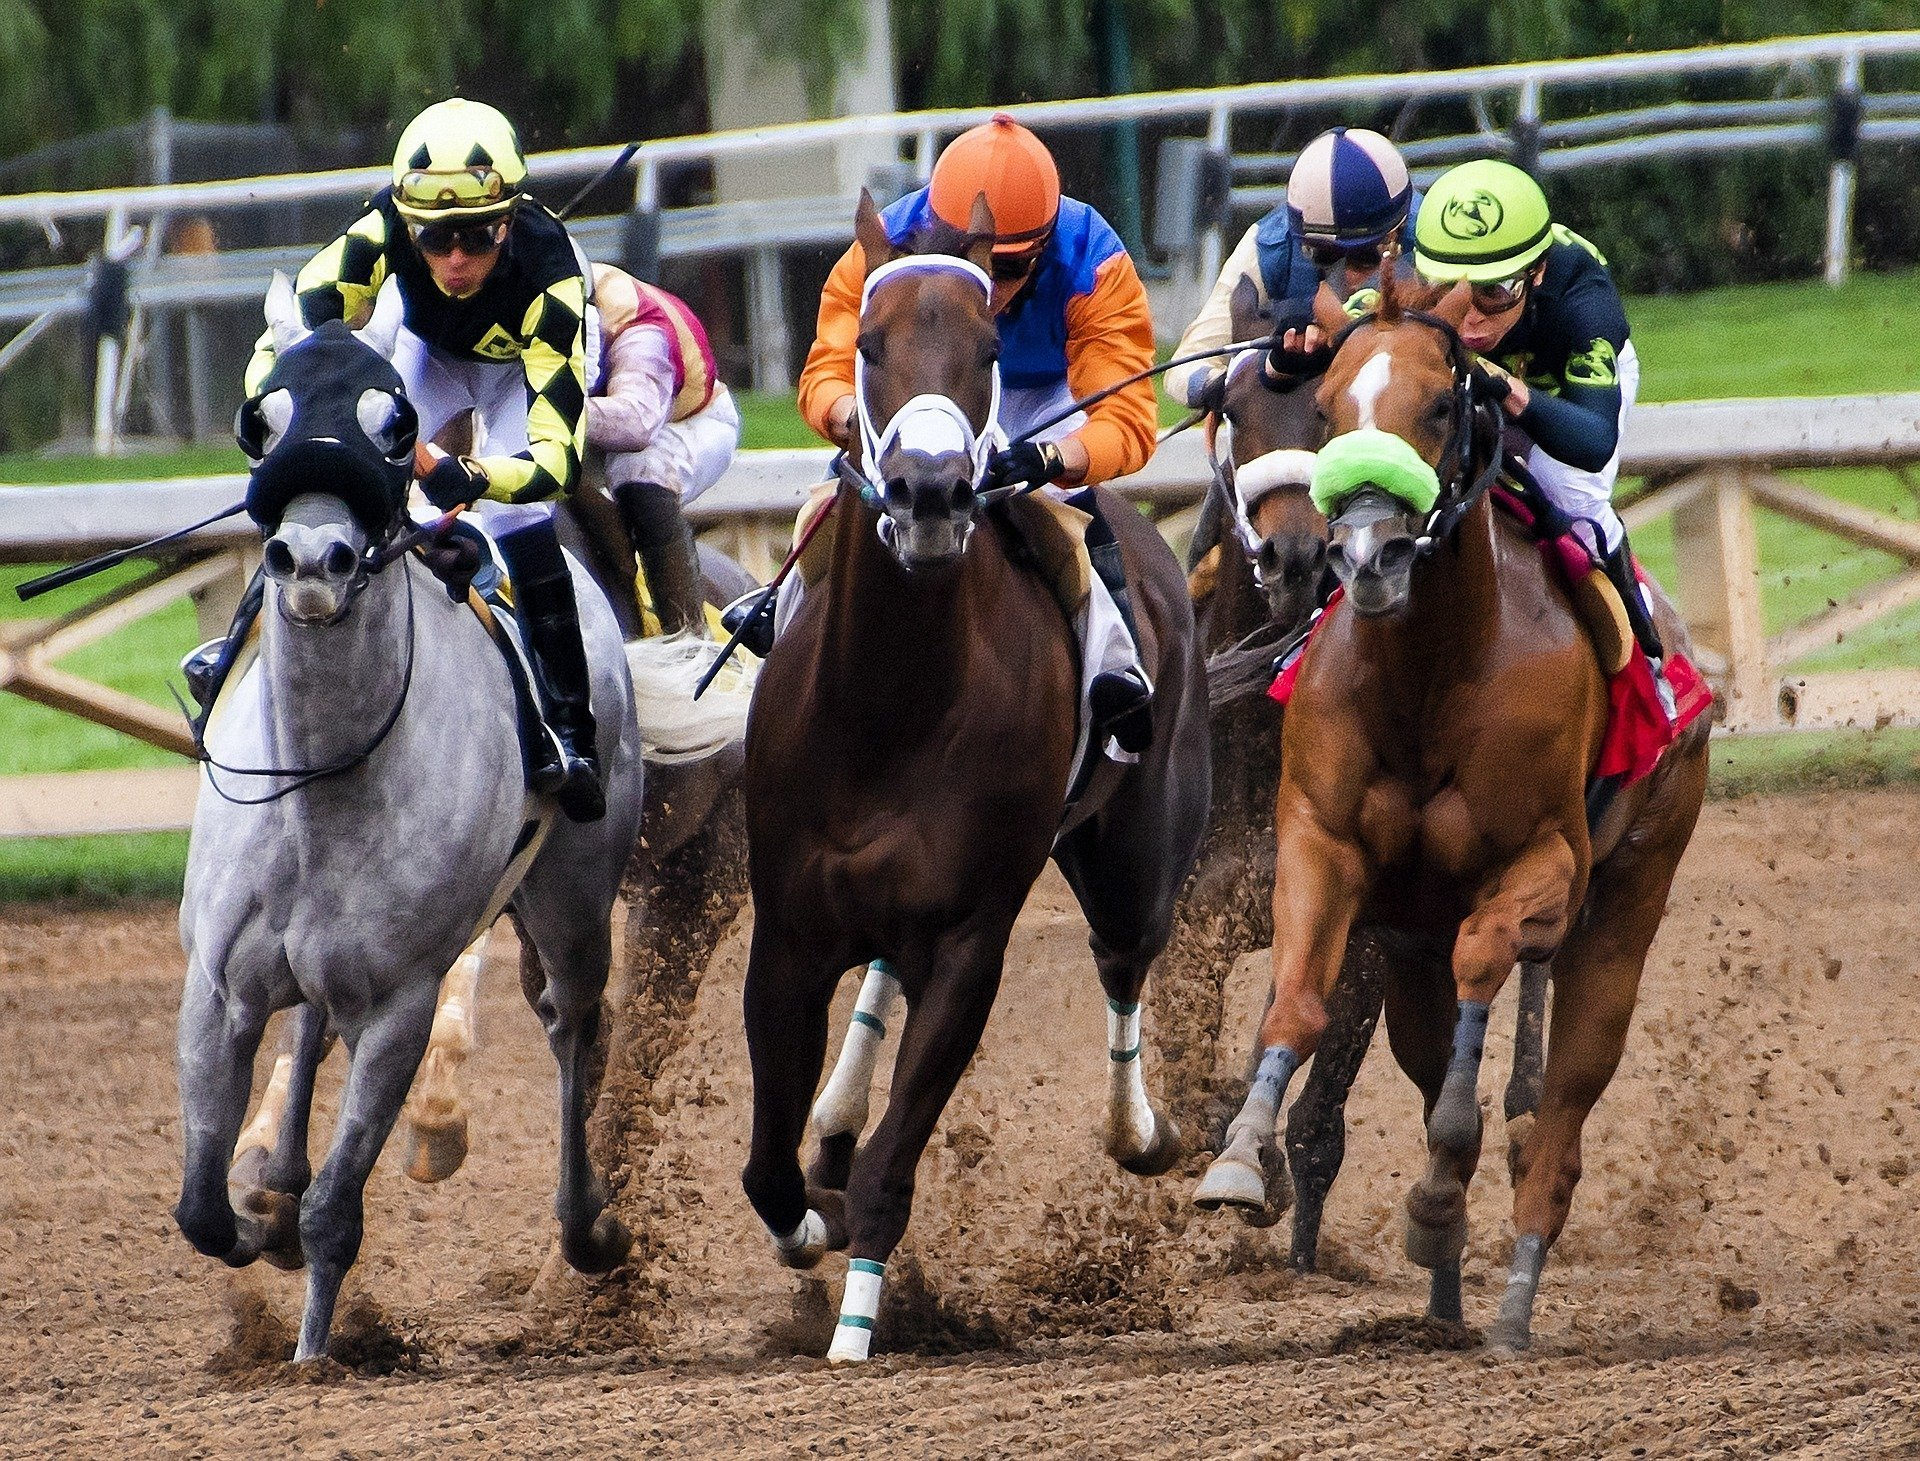 Animal Entertainment - Horse Racing